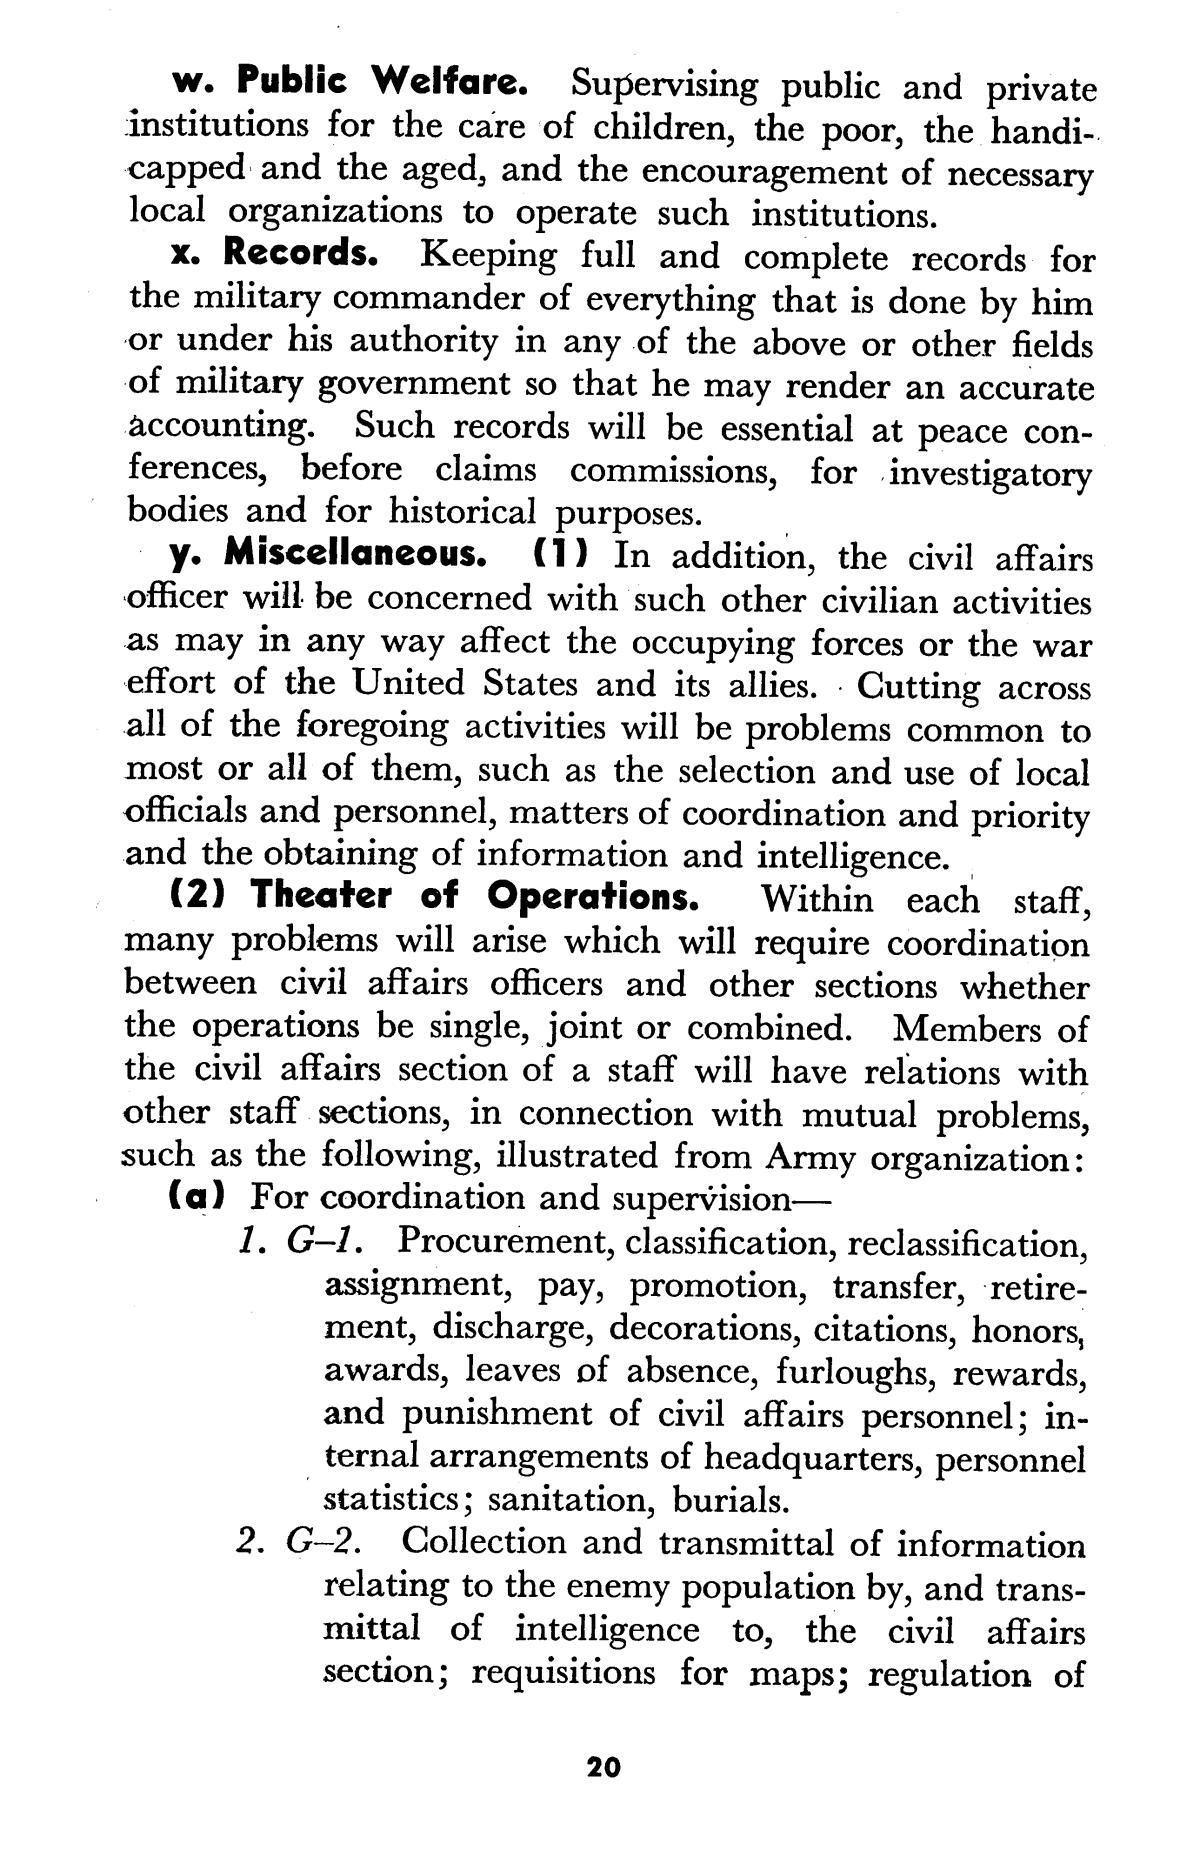 Army-Navy manual of military government and civil affairs.                                                                                                      20